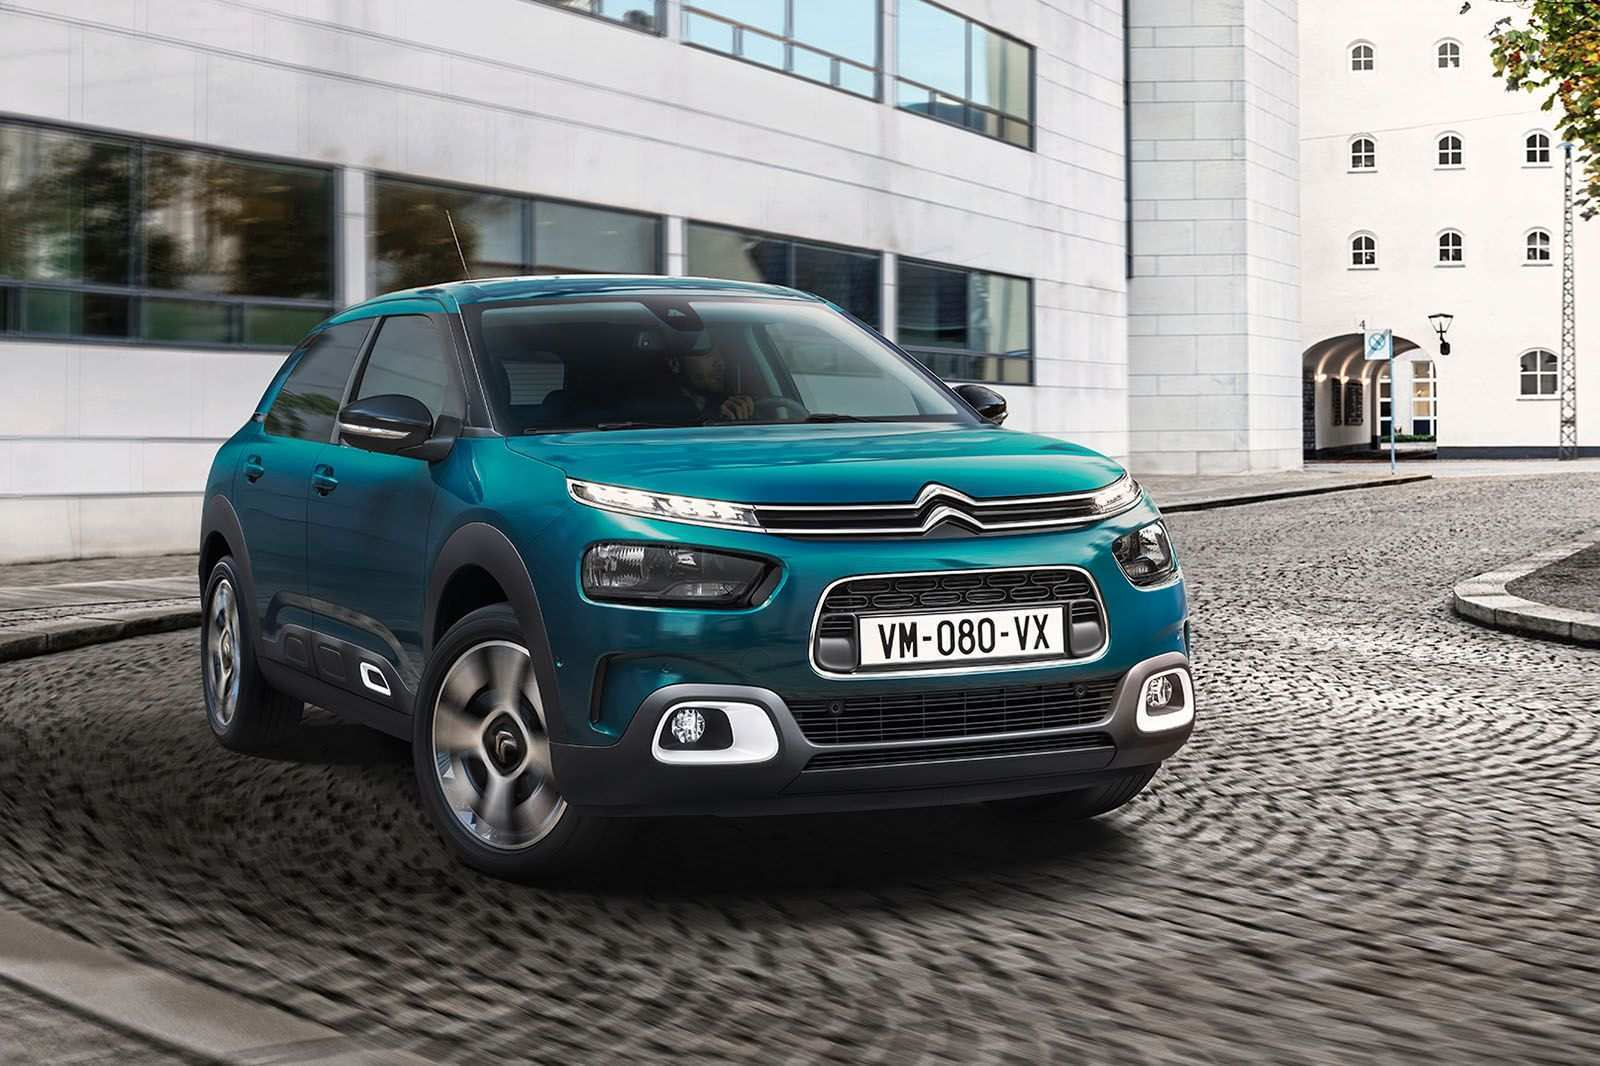 34 Great 2020 New Citroen C4 2018 Price for 2020 New Citroen C4 2018